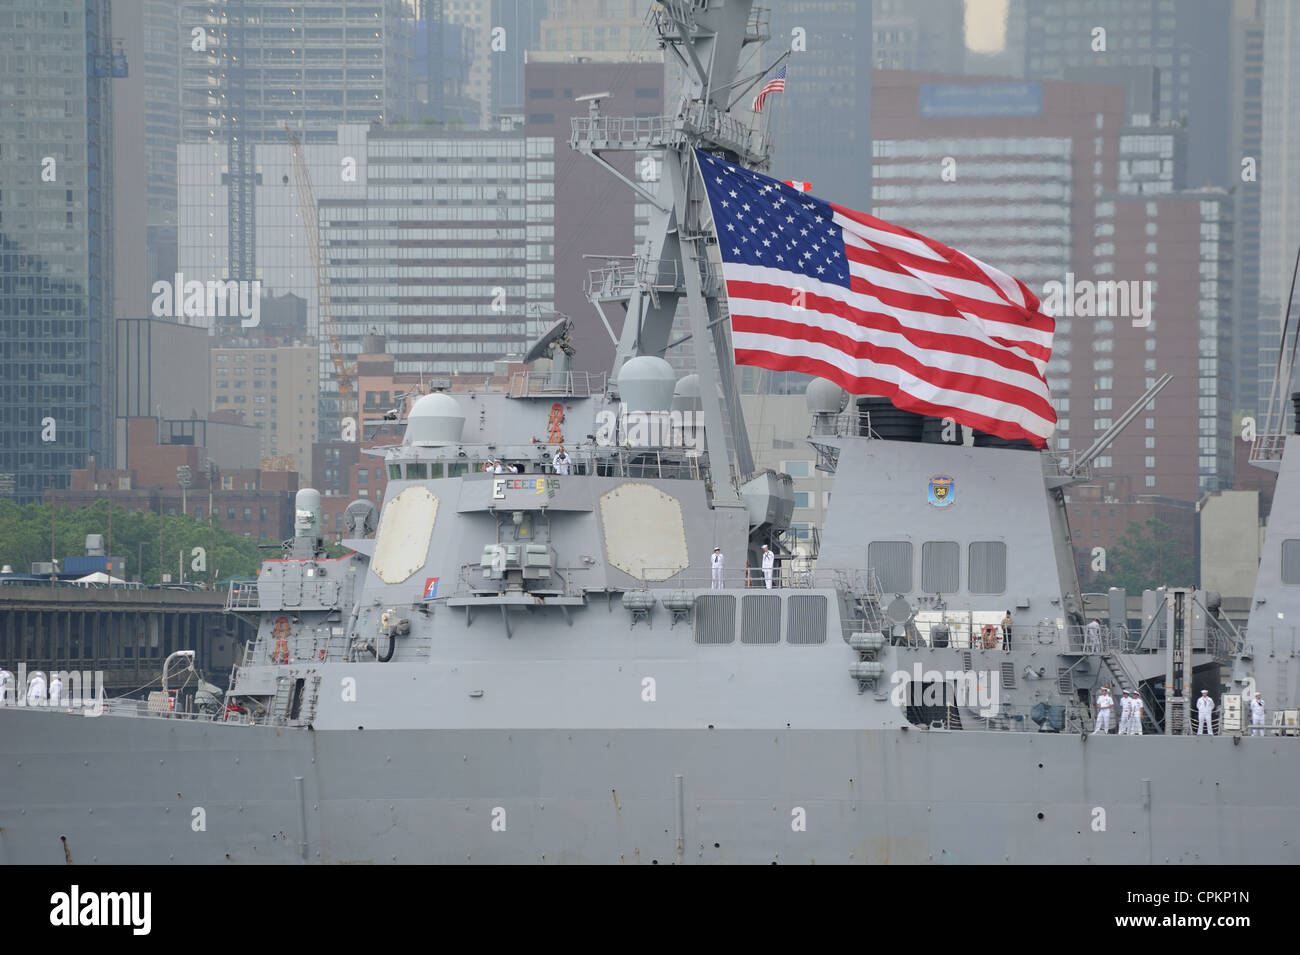 The USS Donald Cook, a guided missile destroyer in the U.S. Navy, took part in the OpSail/Fleet Week parade on the - Stock Image